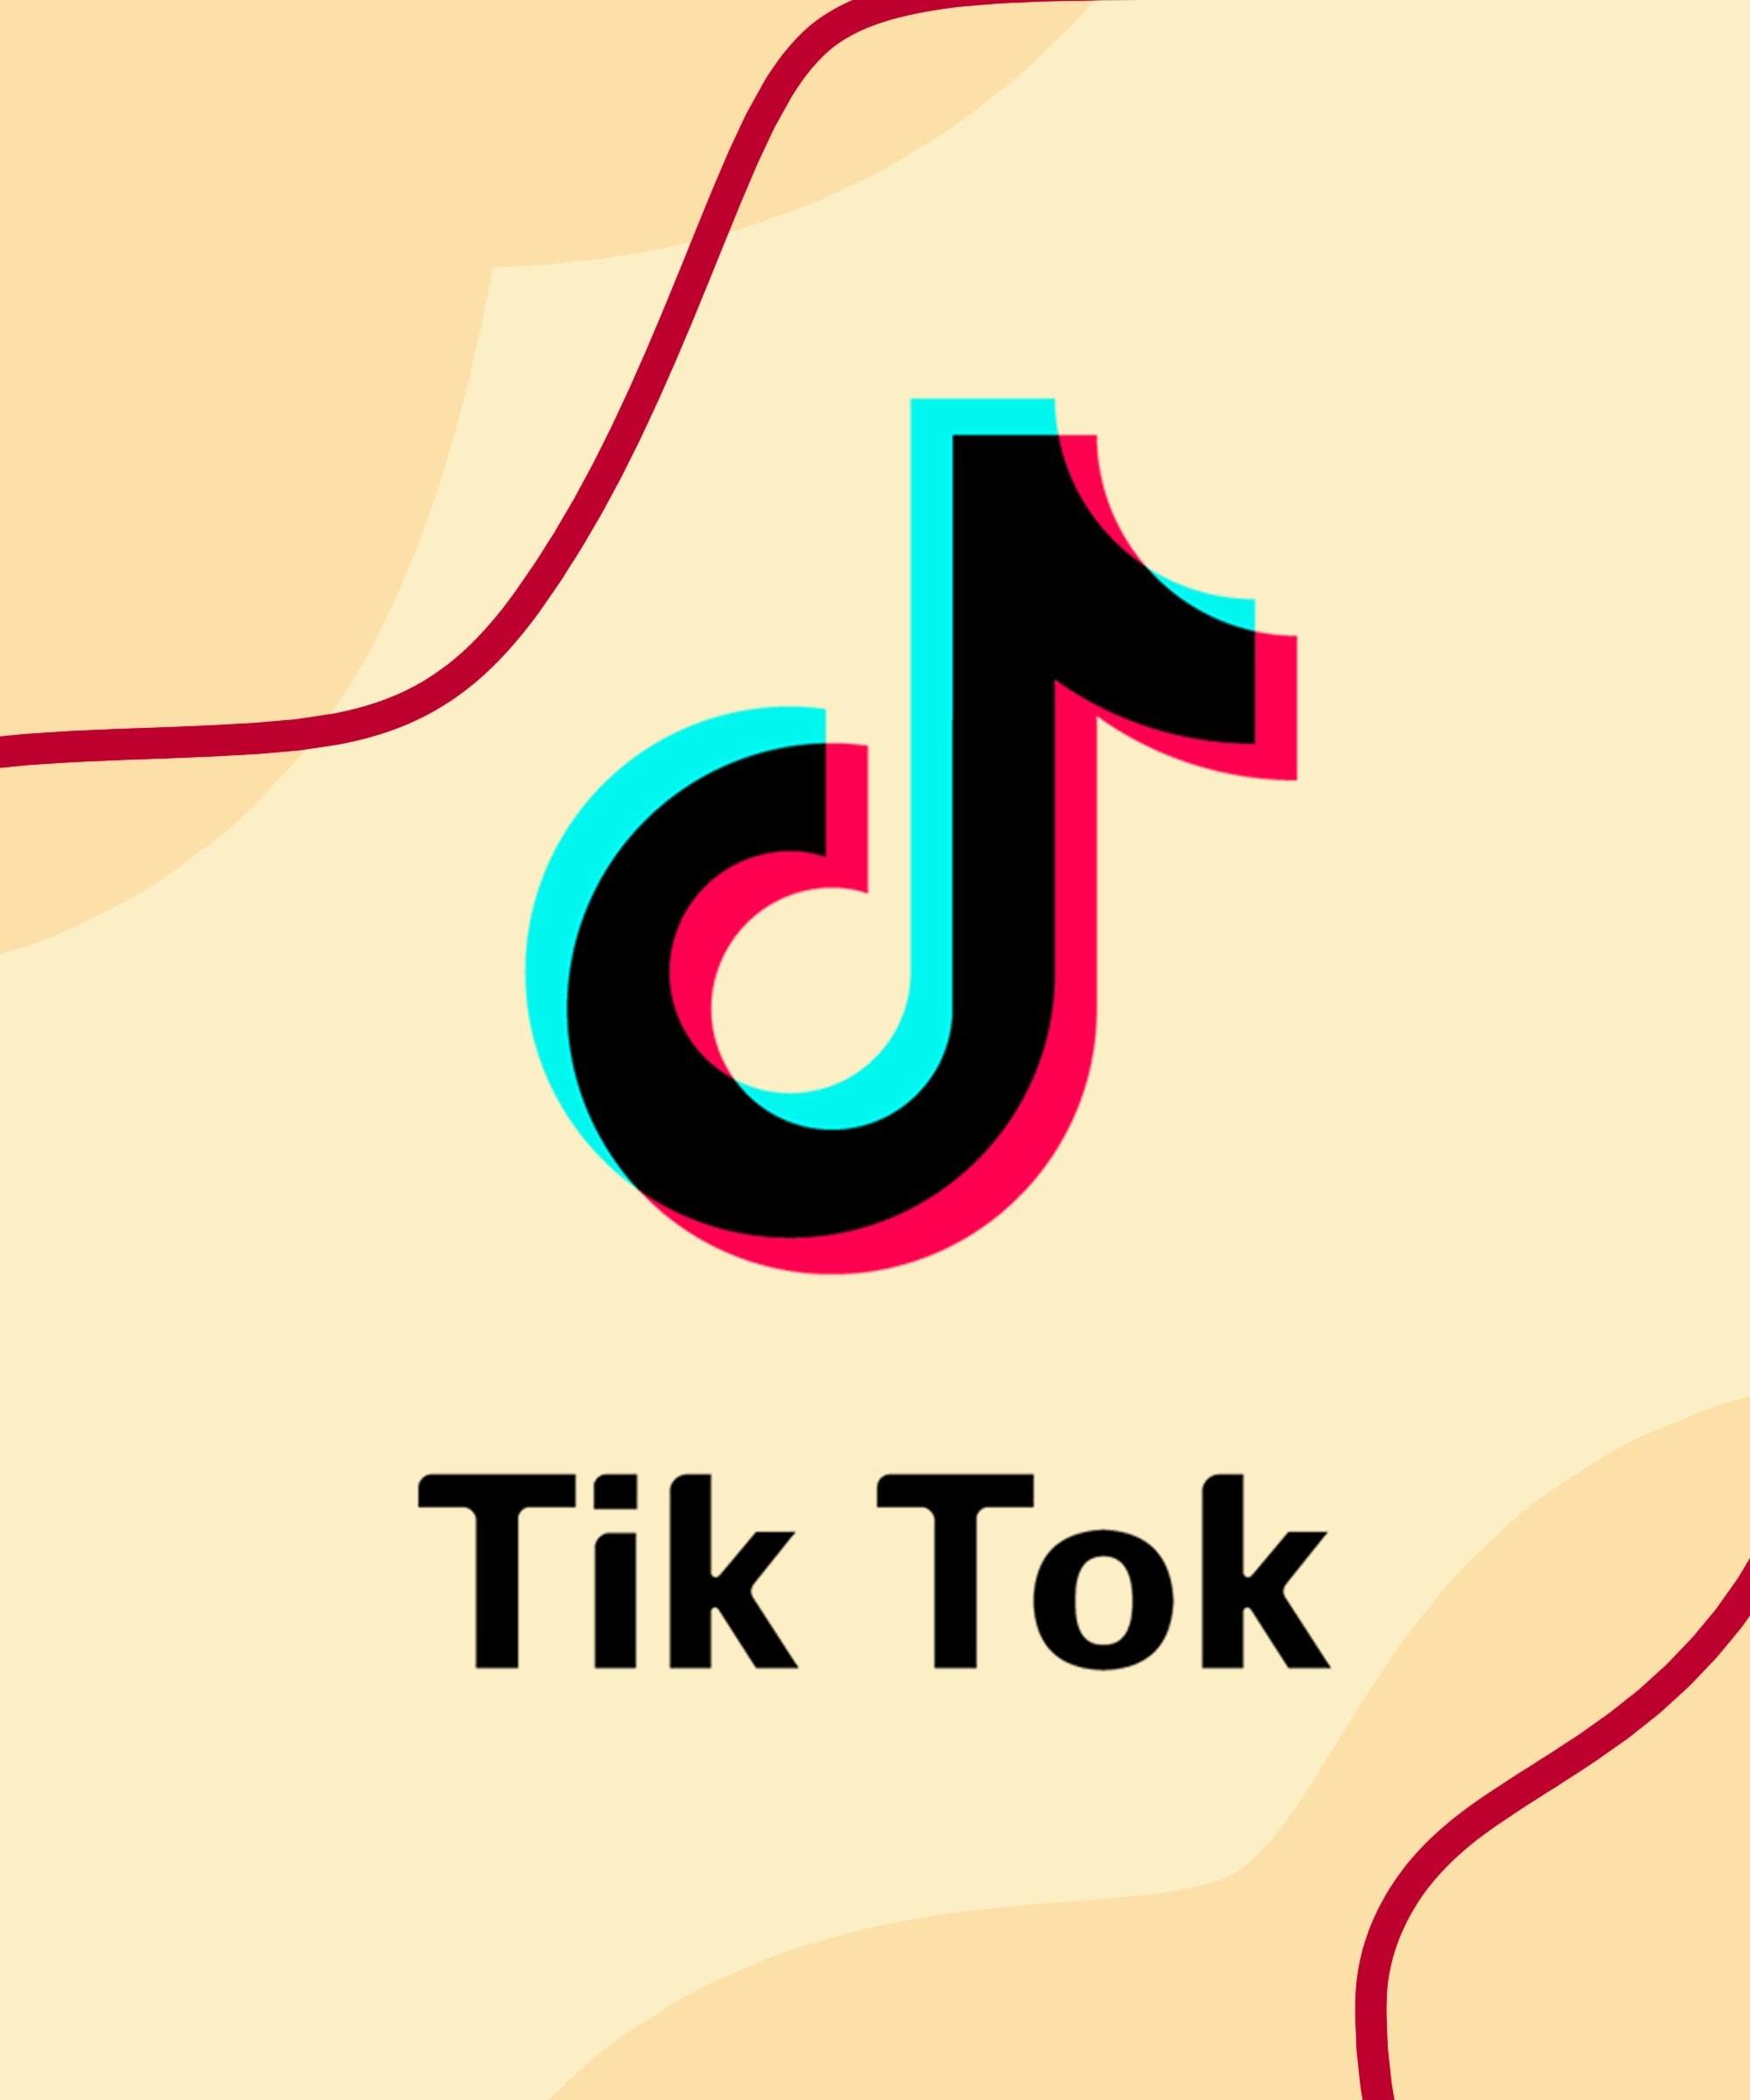 Best Tiktok Editing Apps For Videos On iPhone & Andriod